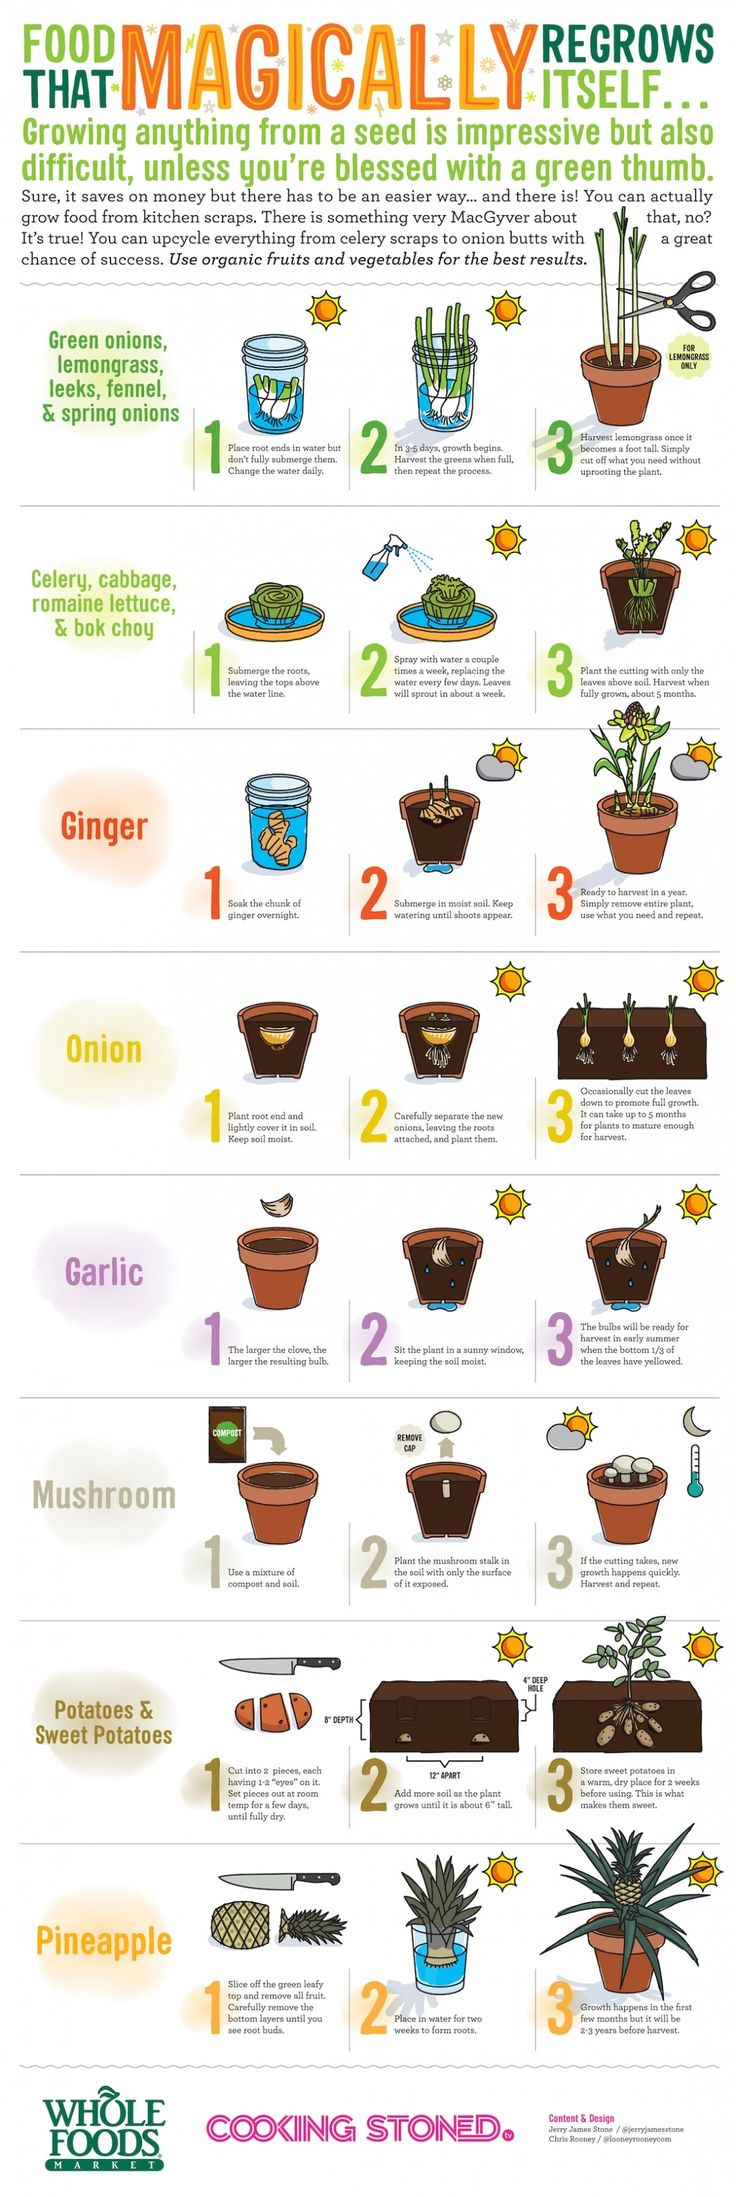 Food that regrows itself garden gardening small garden ideas diy gardening garde…